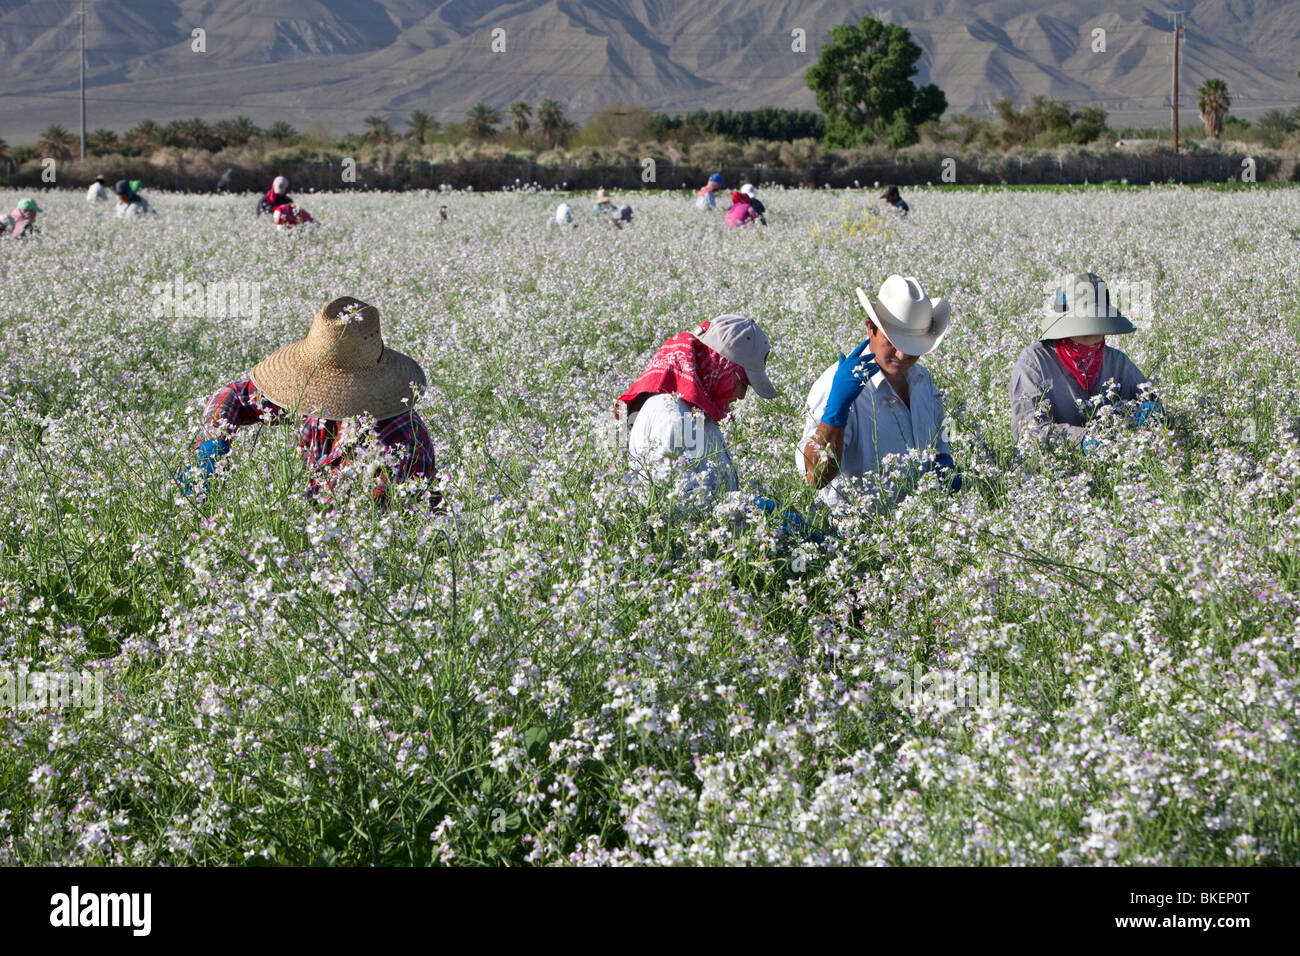 Workers harvesting seed pods of Daikon radish. flowering field. - Stock Image